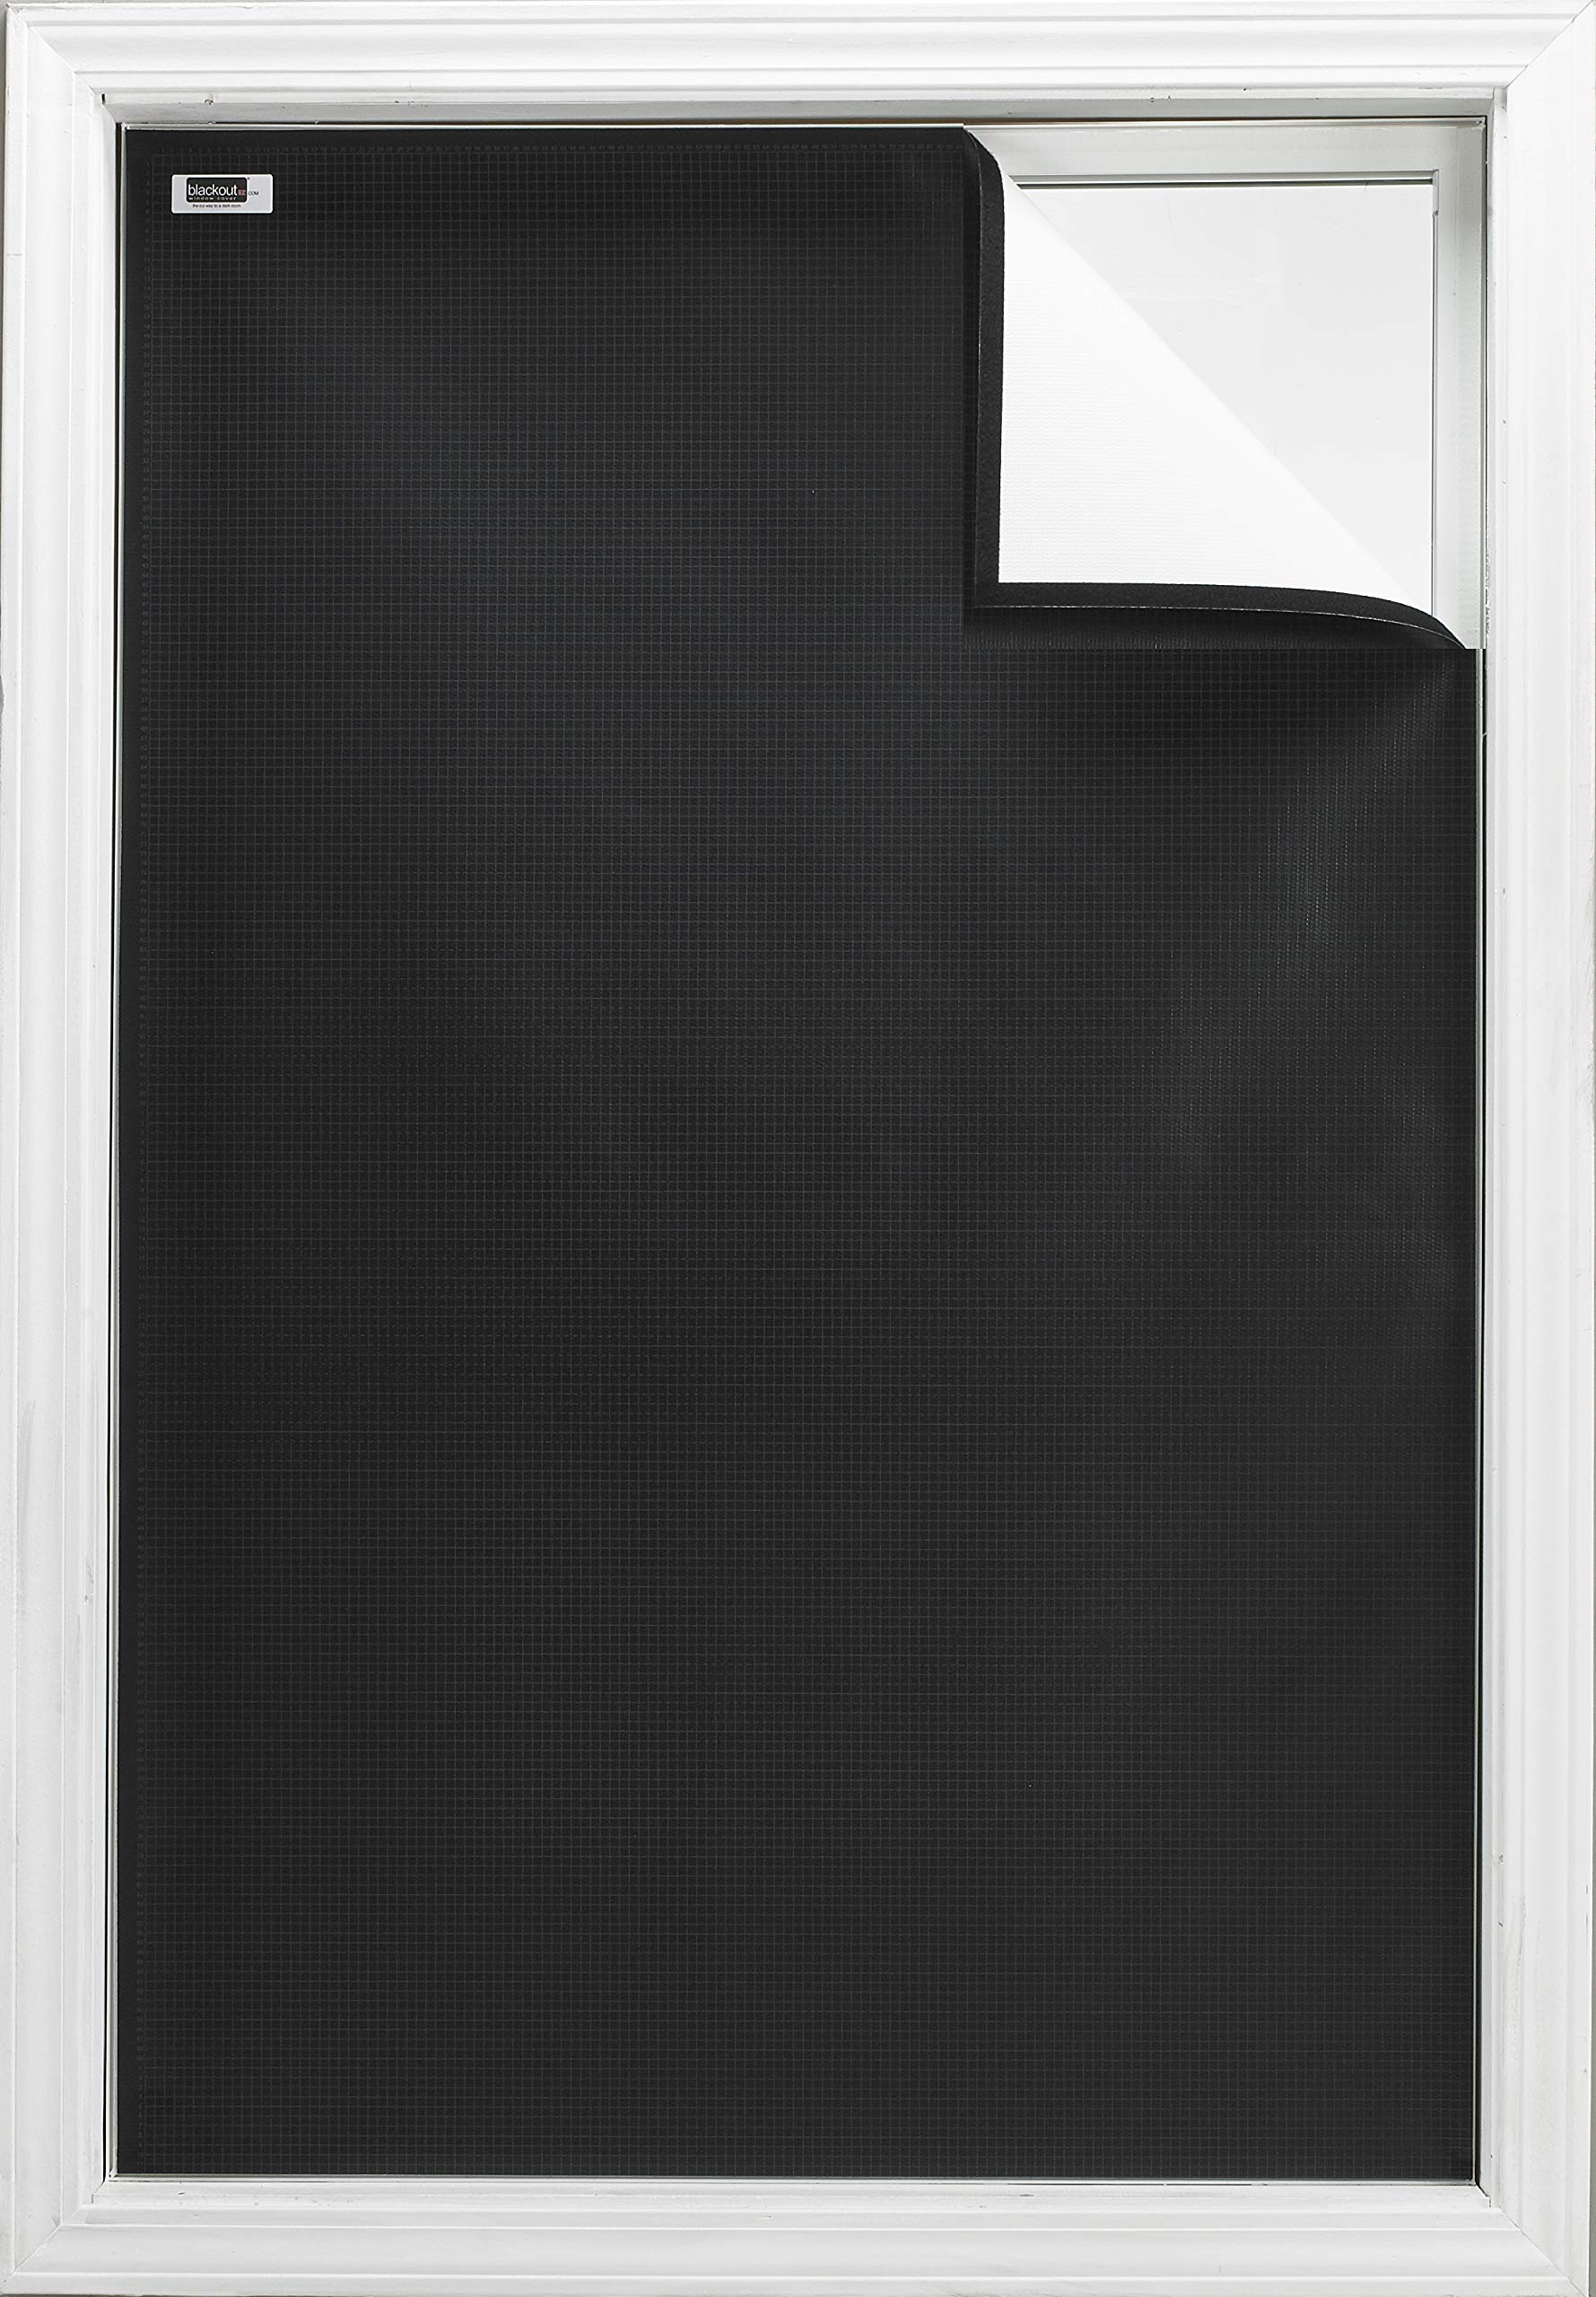 Blackout EZ - Total Sunlight Blocking Window Cover - Complete Light Block For: Living Room, Nursery, Home Theatre, TV Room, LARGE - Customizable To (45'' x 66'') Black In/White Out - Made in USA by Blackout EZ (Image #1)